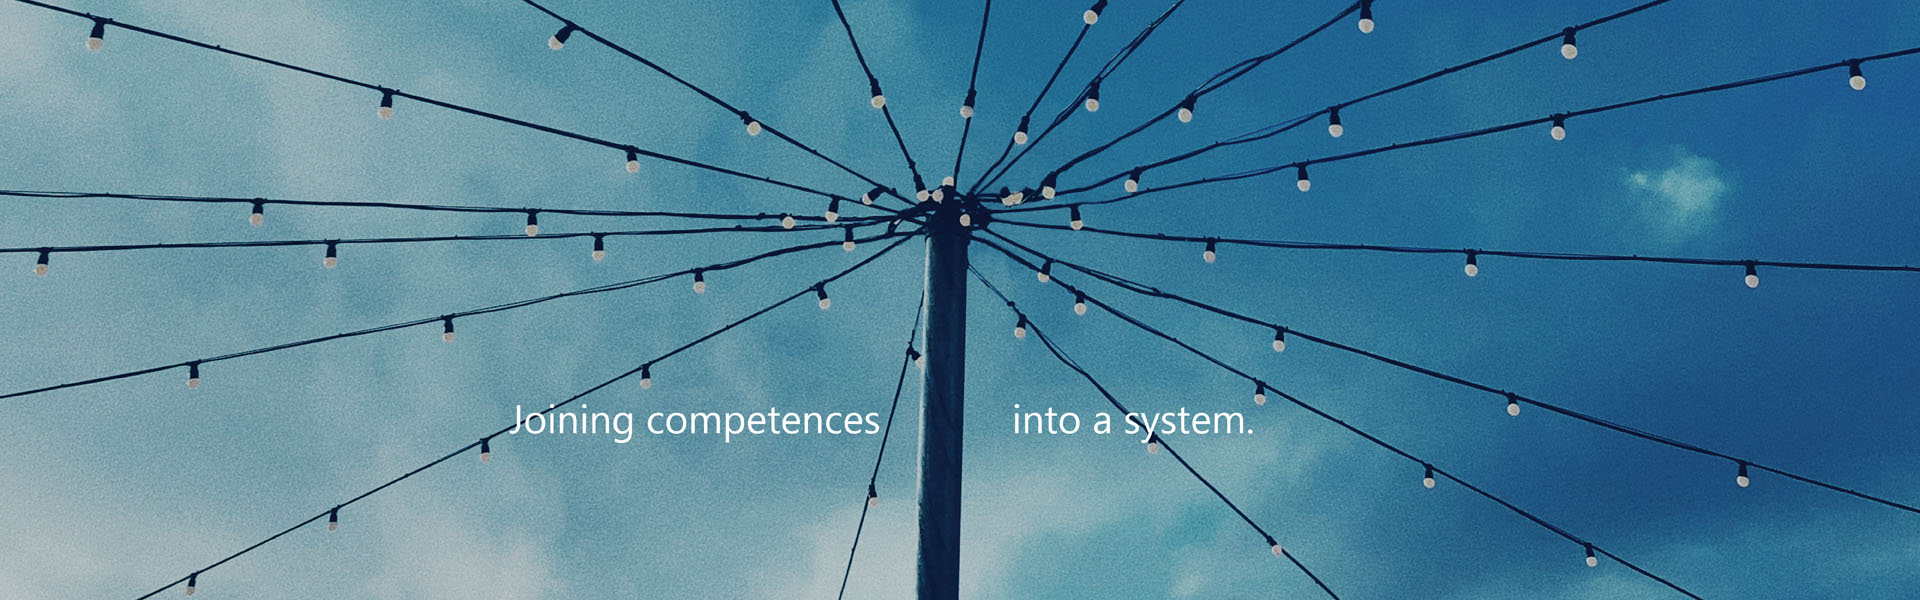 Joining competences into a system